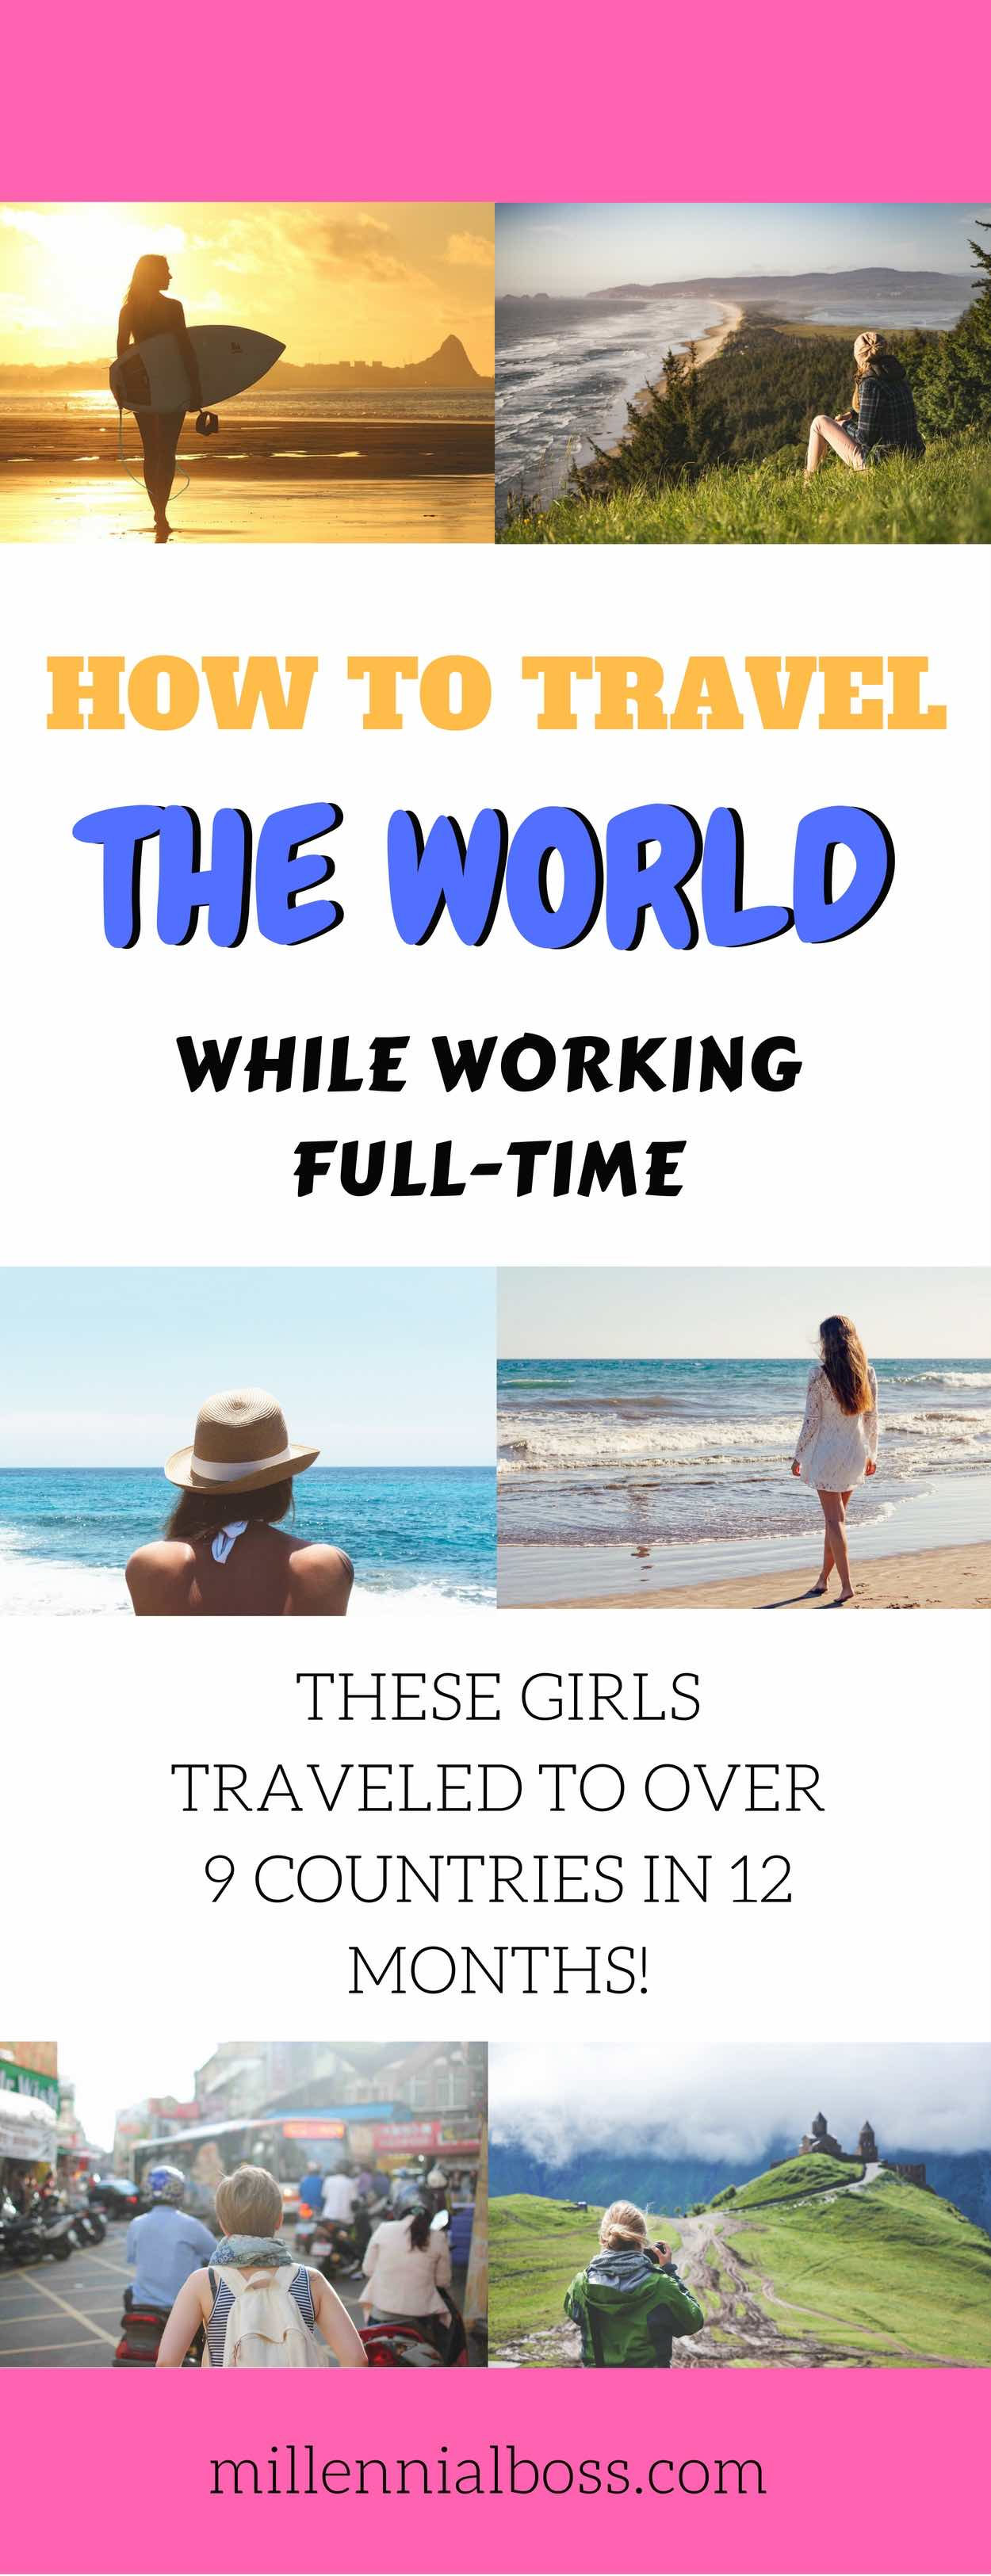 travel world while working | maximize travel while working | travel on weekends while working